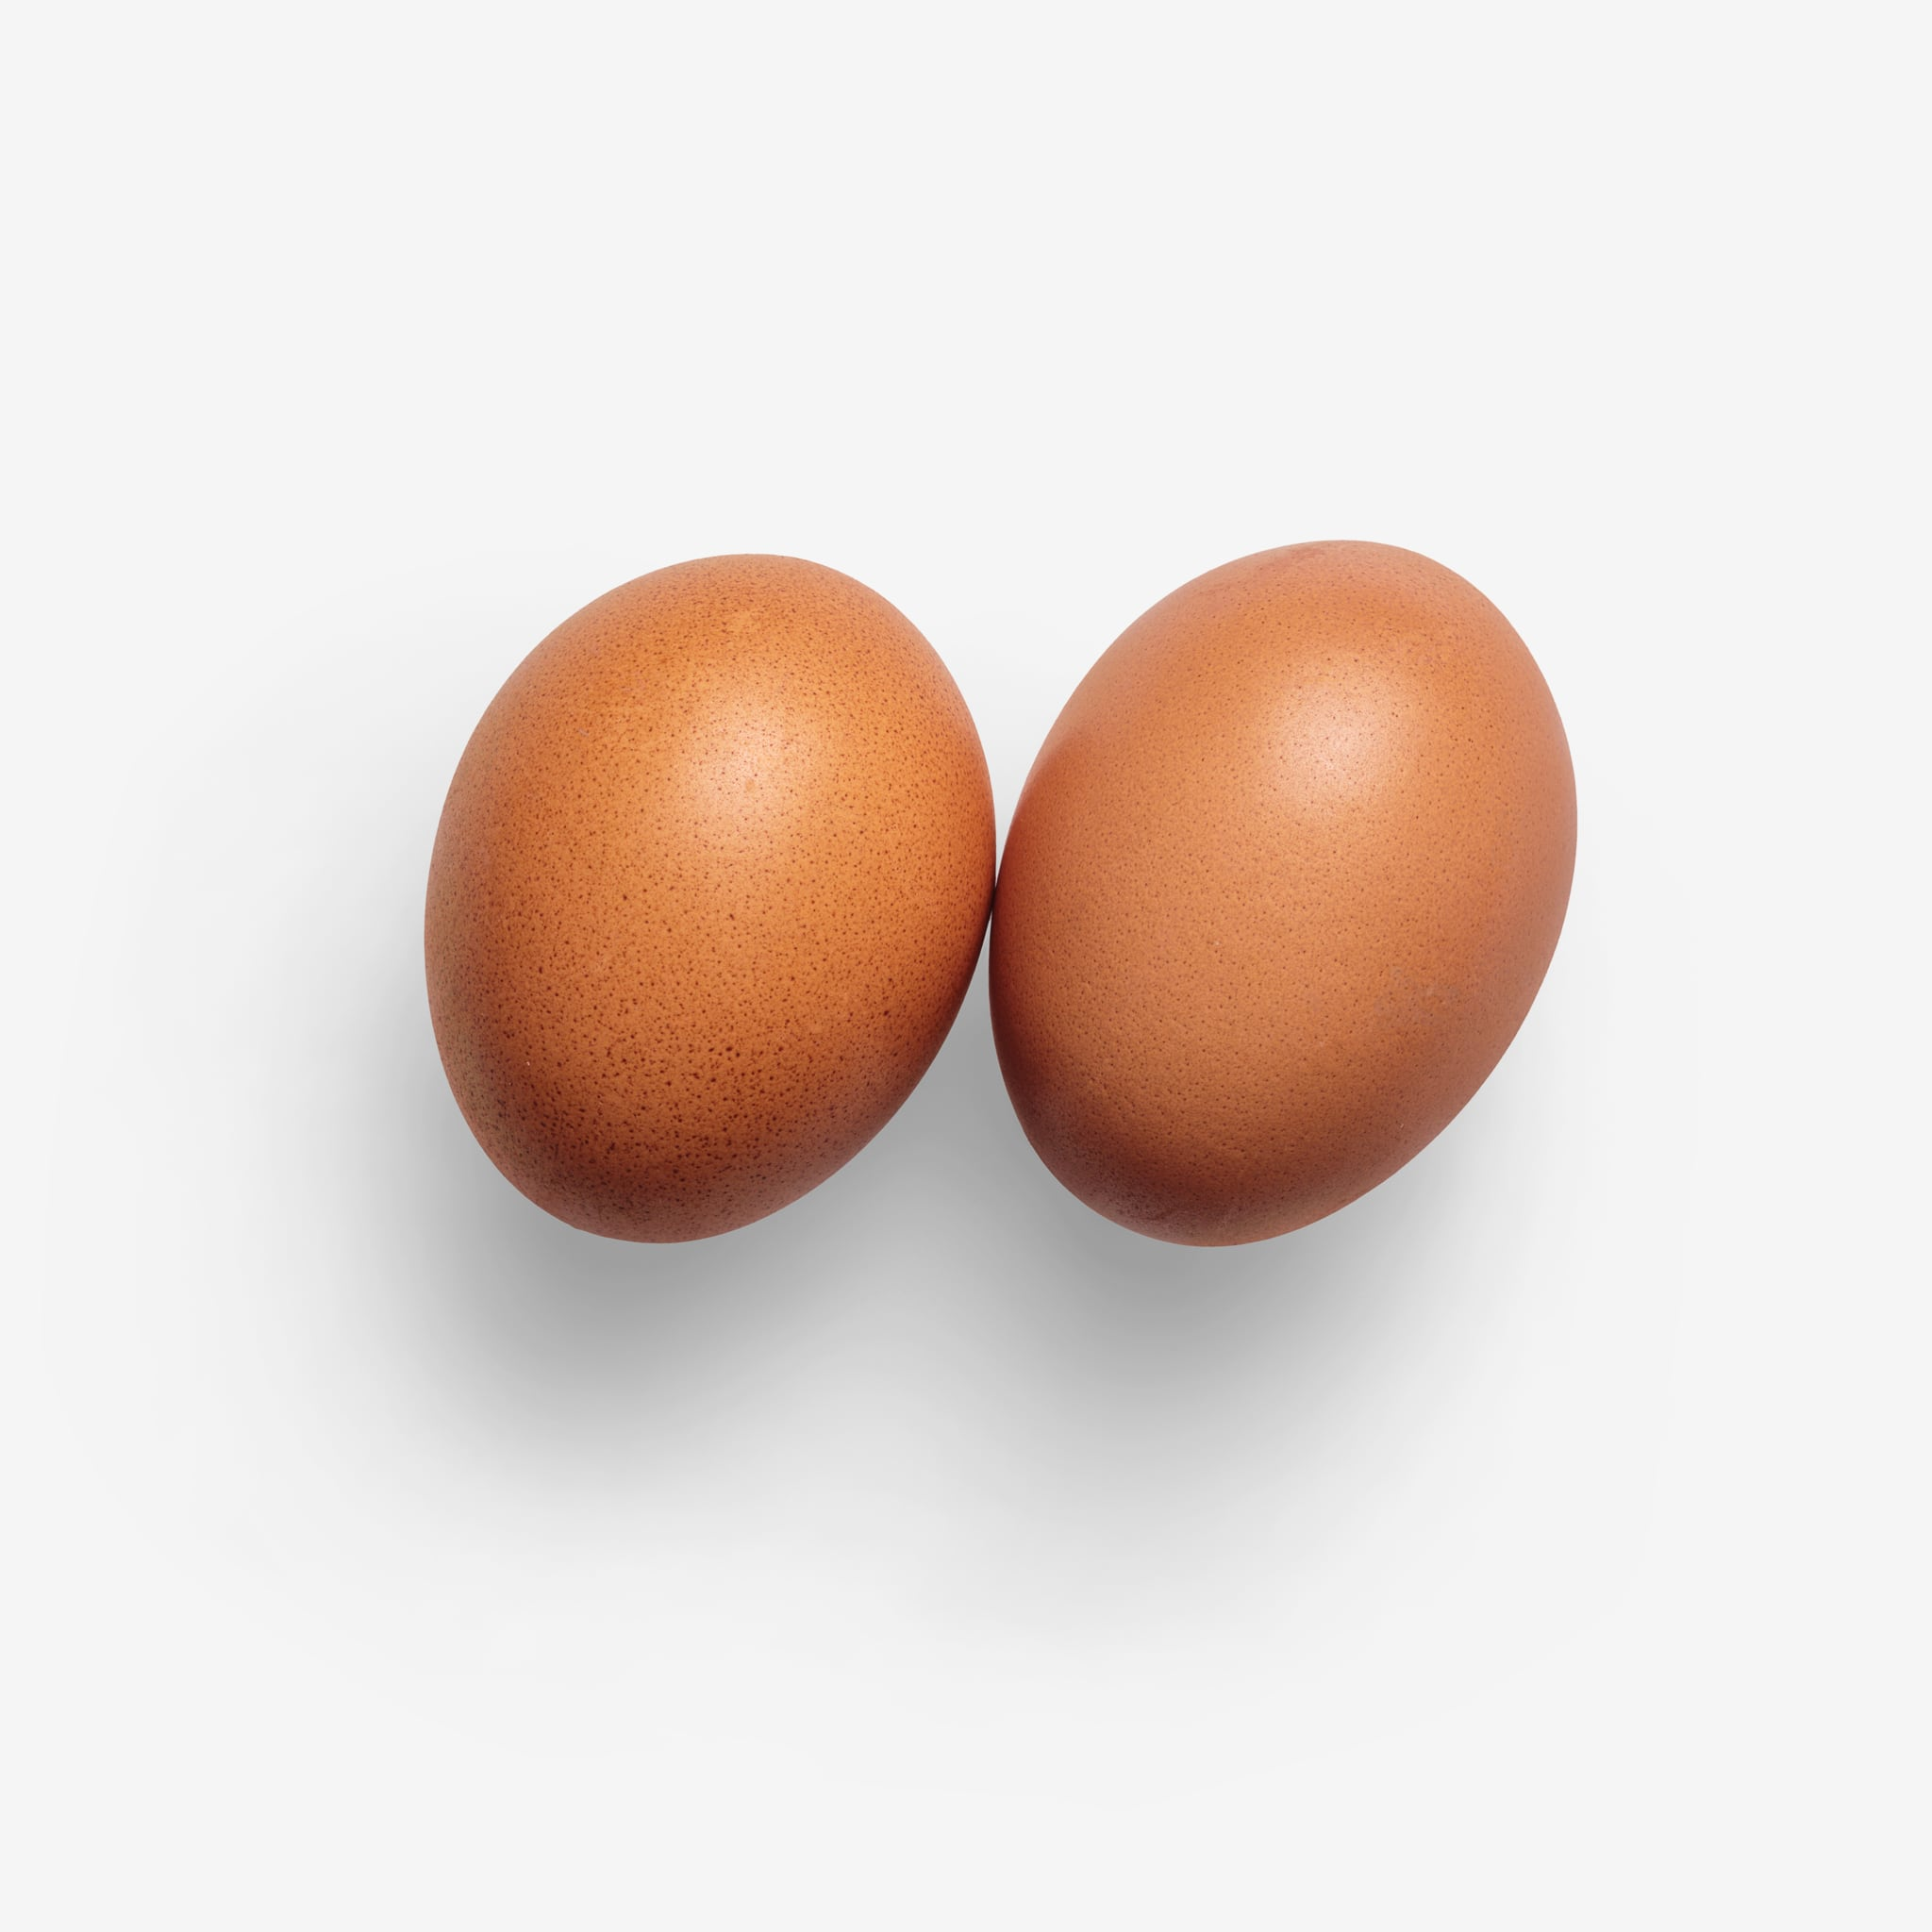 Egg PSD image with transparent background